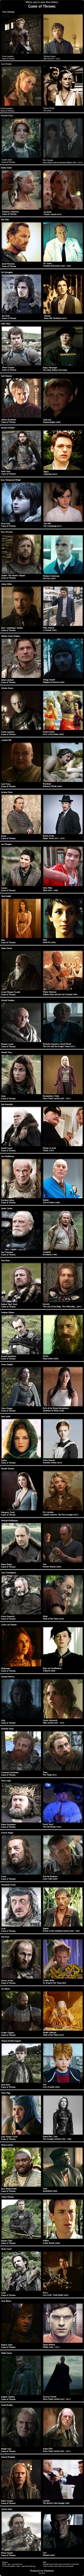 Game of Thrones – Where you've seen them before